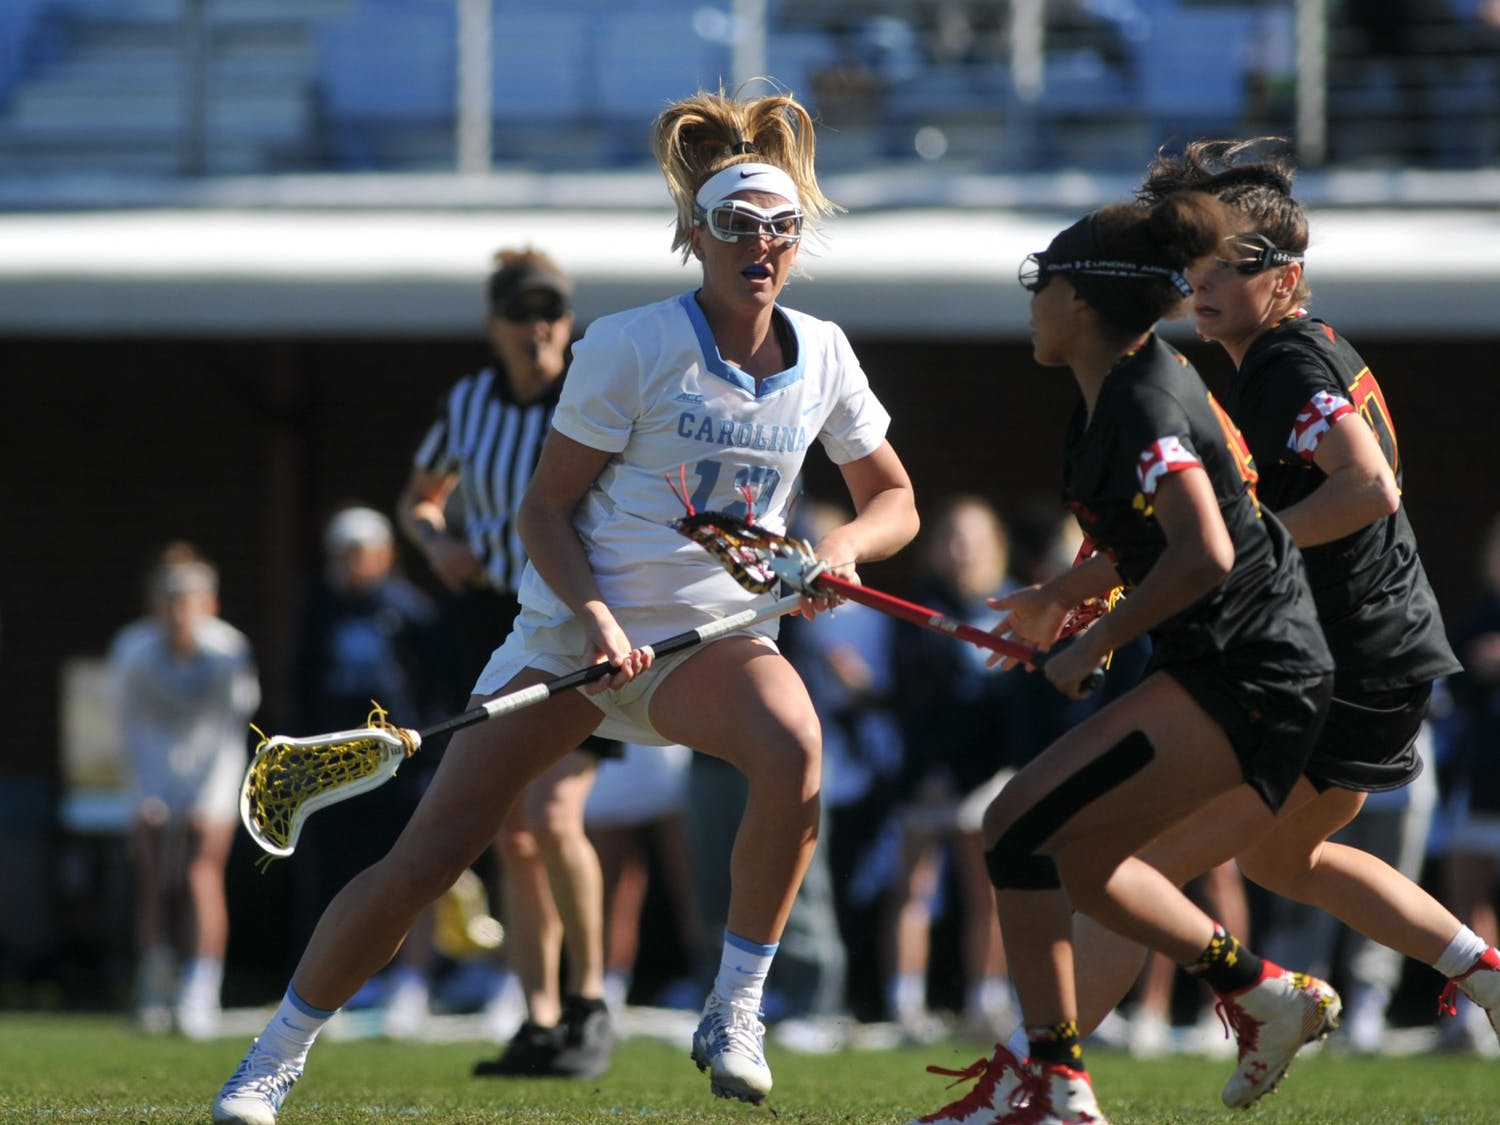 UNC junior midfielder Ally Mastroianni (12) blocks opponents after a pass during the game against Maryland at Dorrance Field on Saturday, Feb. 22, 2020. No 1. UNC won against No 4. Maryland 19-6.